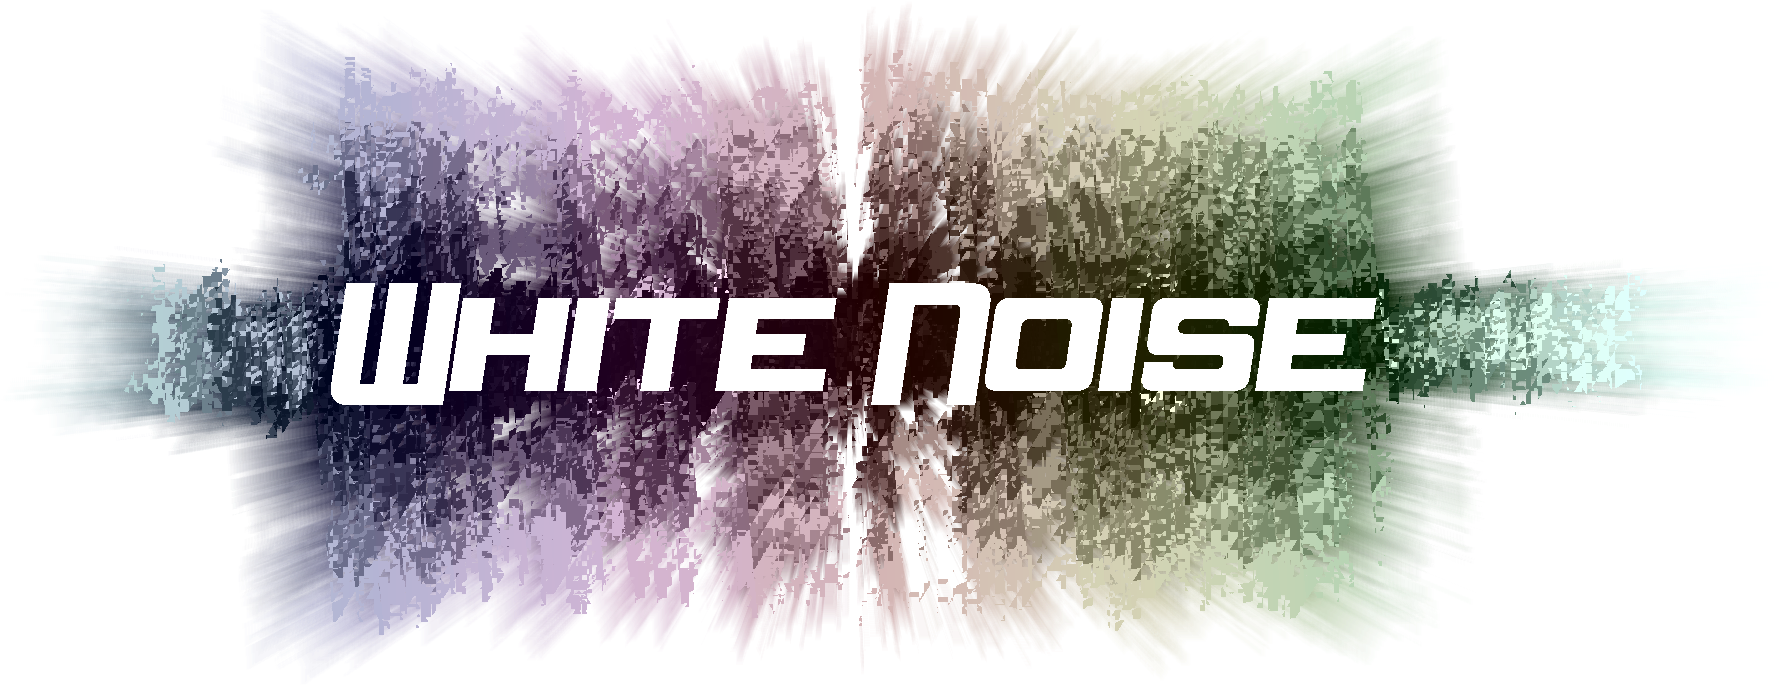 Download White Noise Logo - Graphic Design PNG Image with No